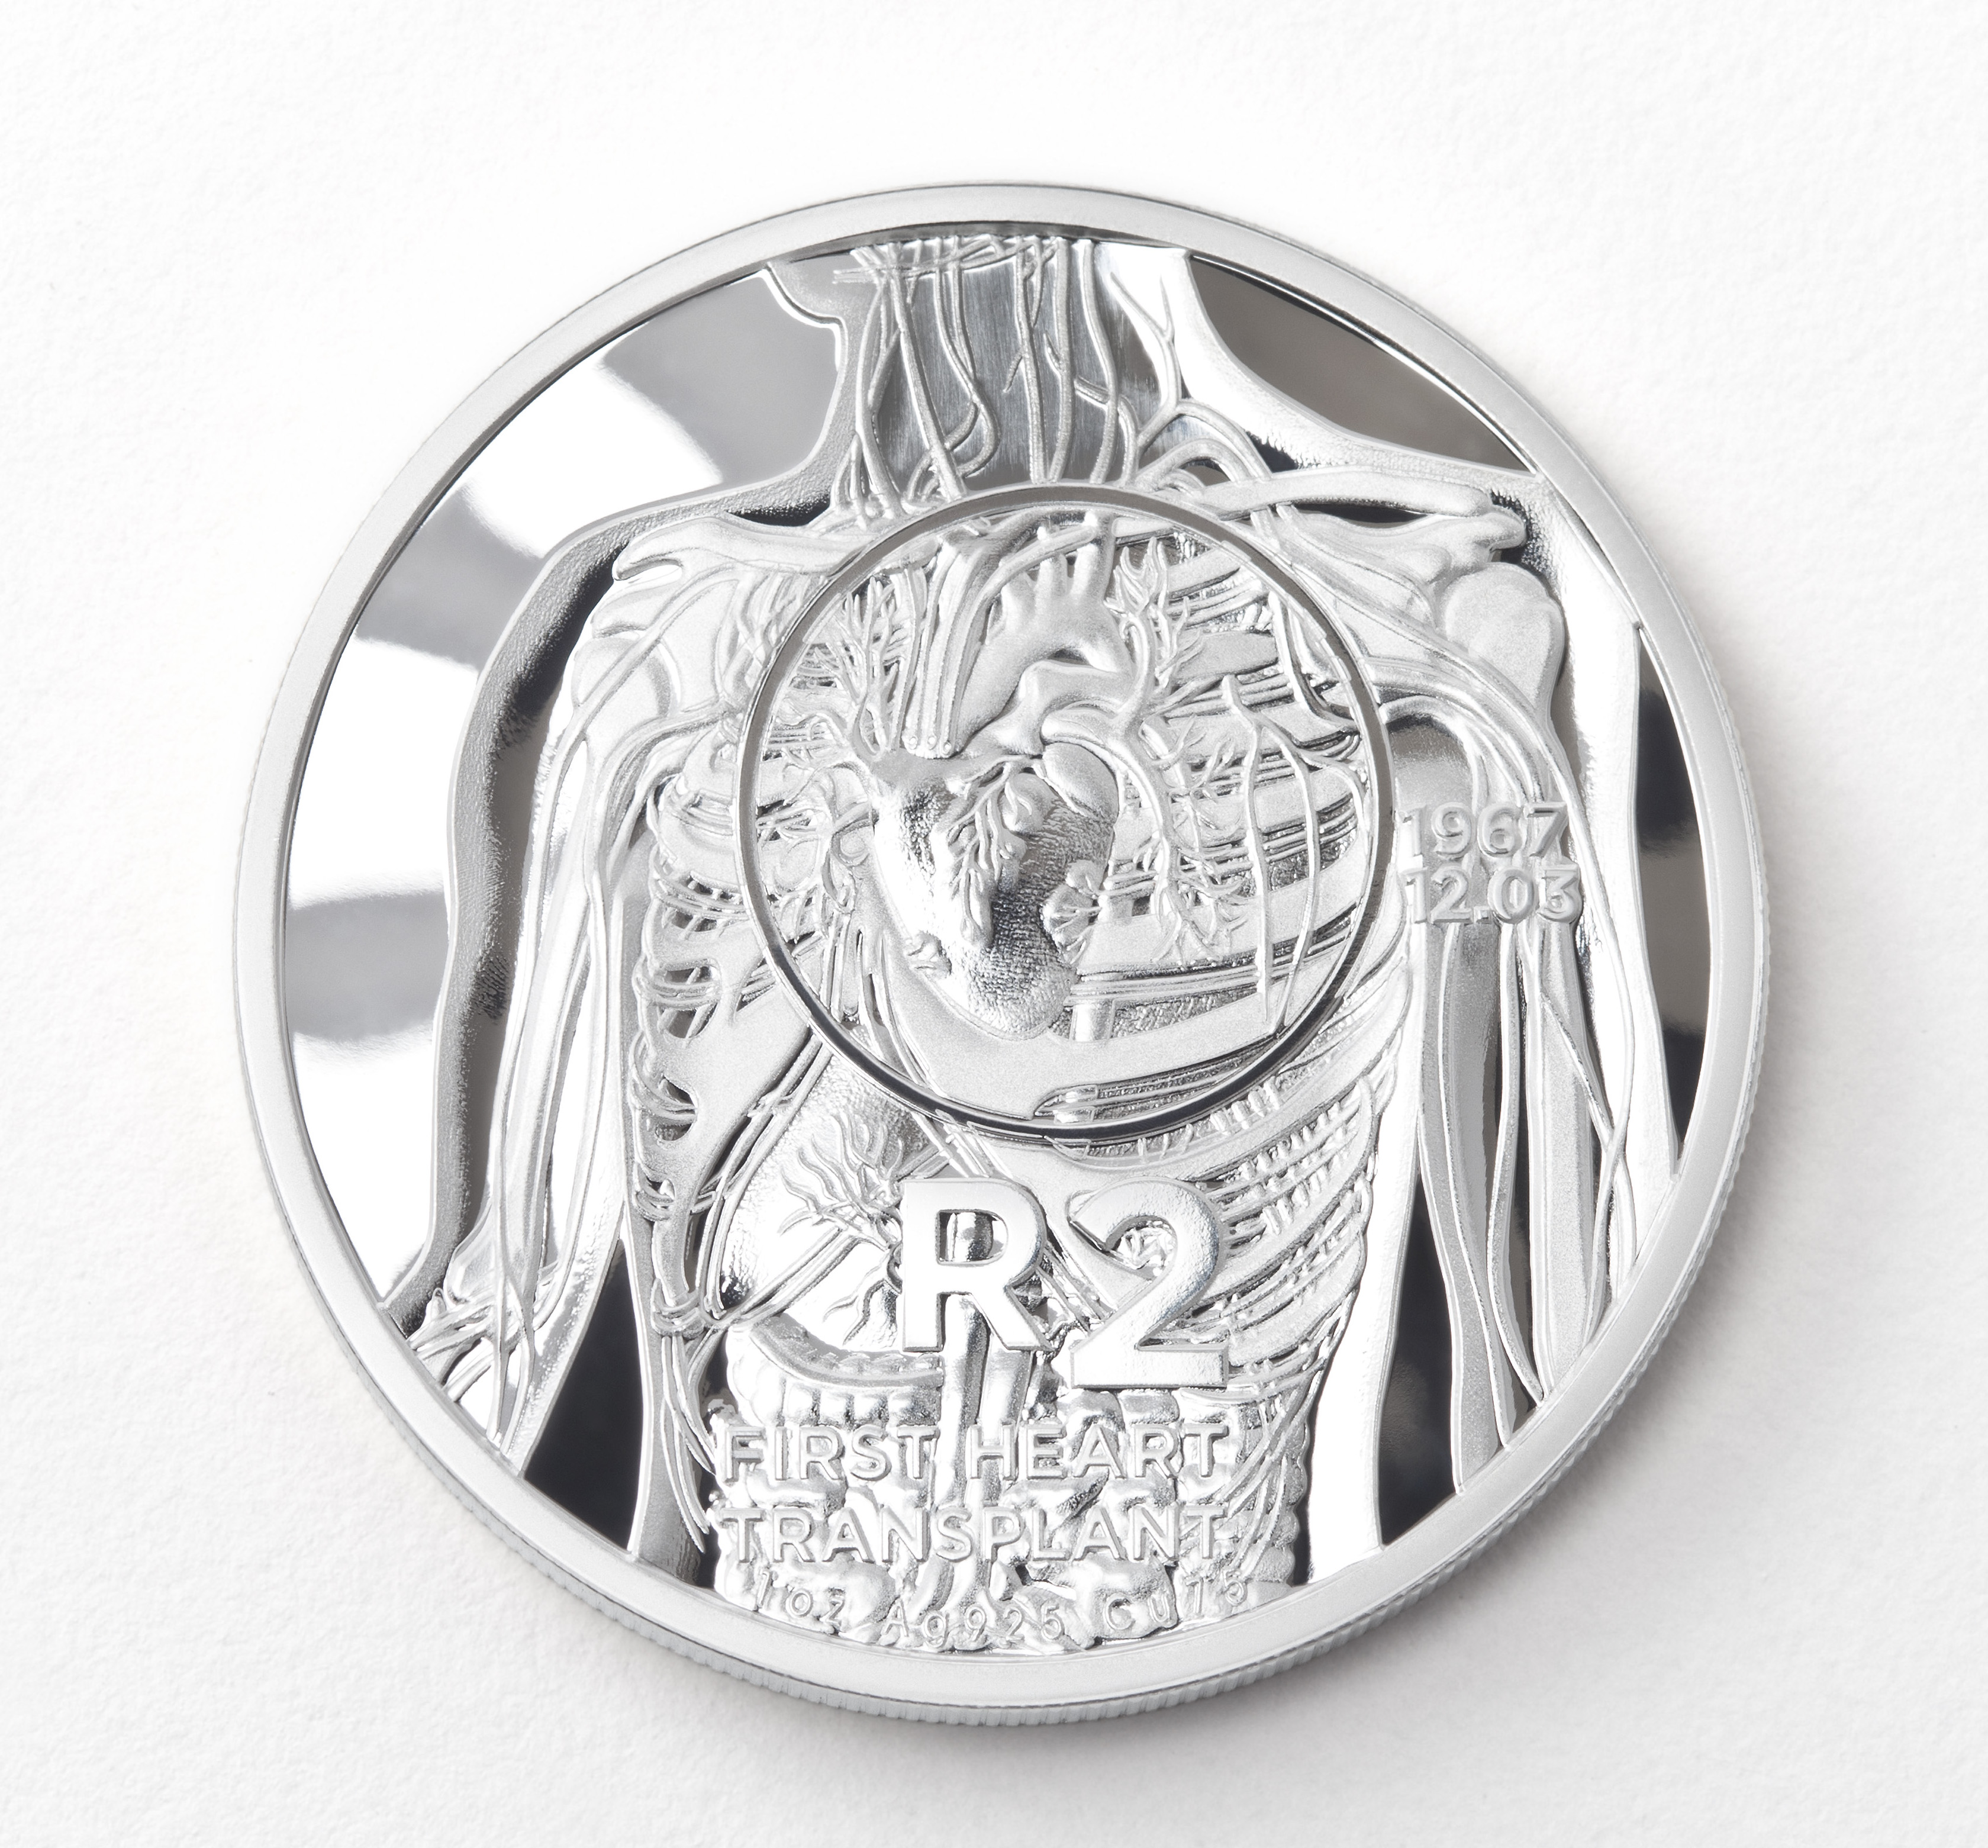 main image for South African Mint's Heart Transplant Commemorative Coin Wins Best Contemporary Event Coin at the Coin Of The Year Awards